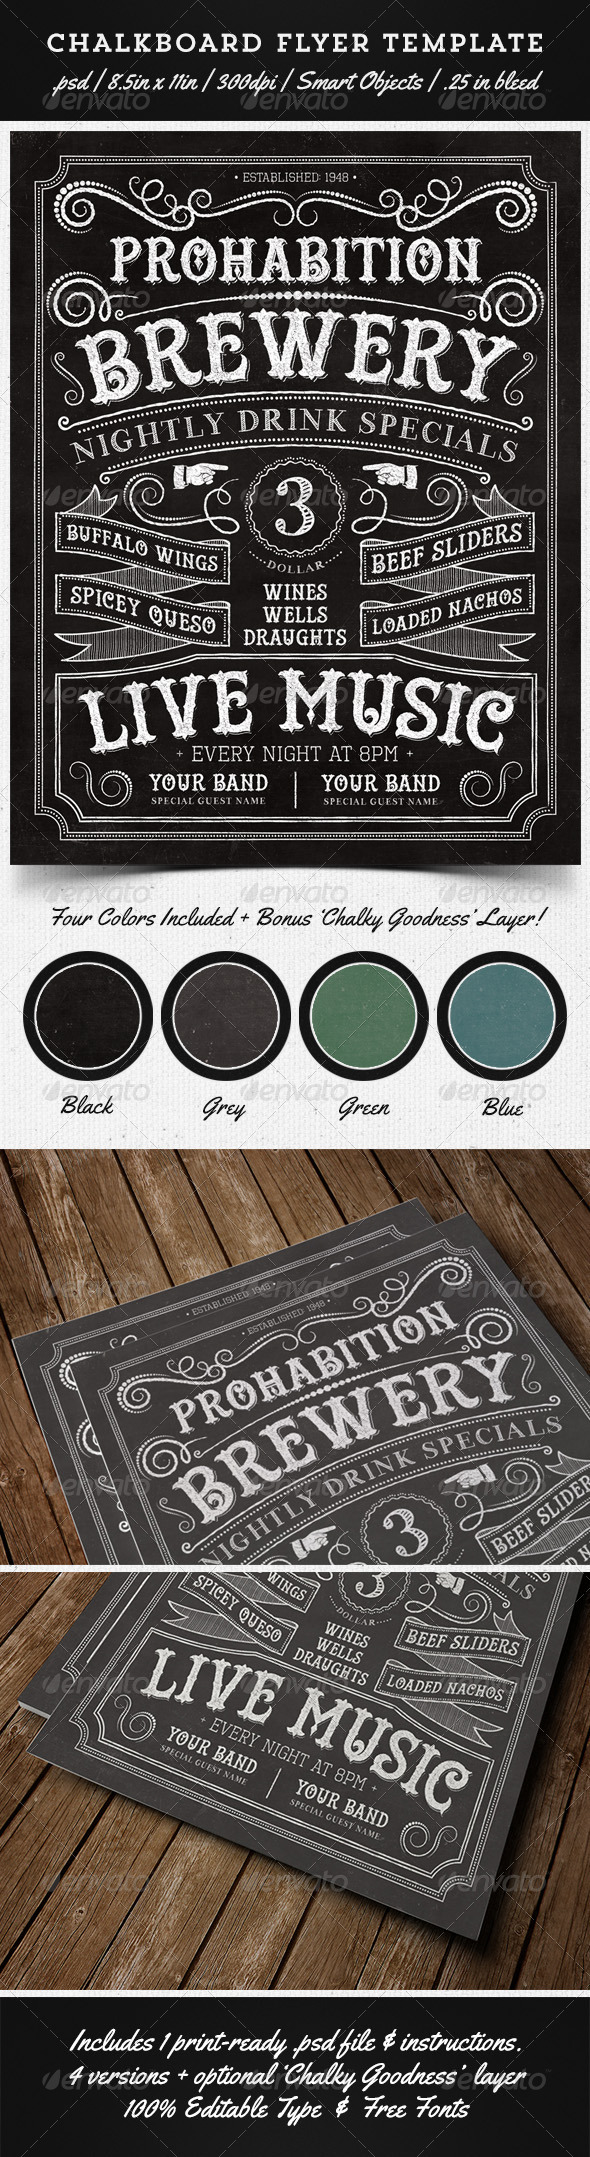 GraphicRiver Chalkboard Flyer Template 5405878